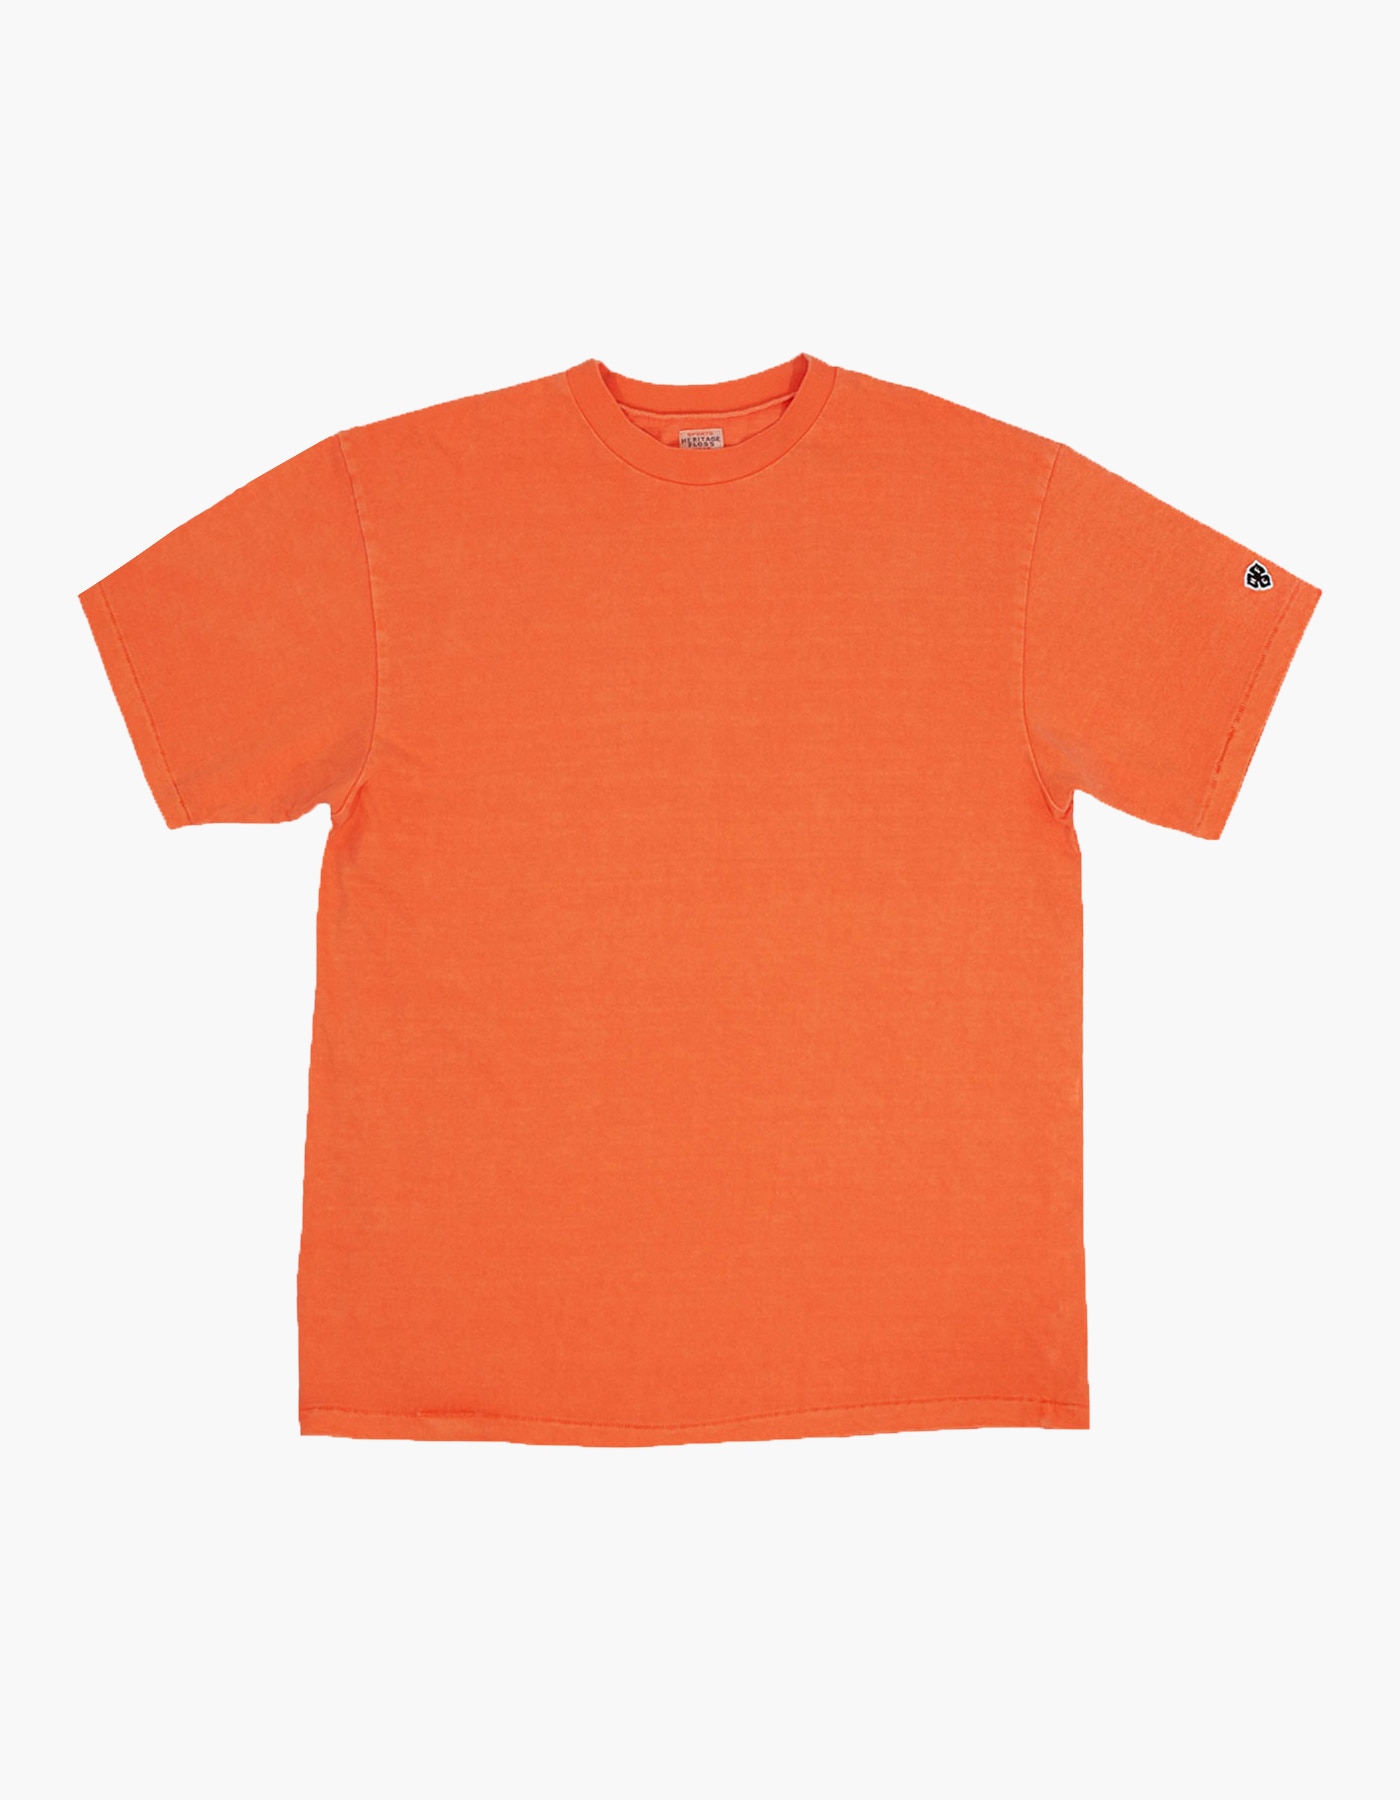 PIGMENT COMPACT YARN T-SHIRTS / ORANGE